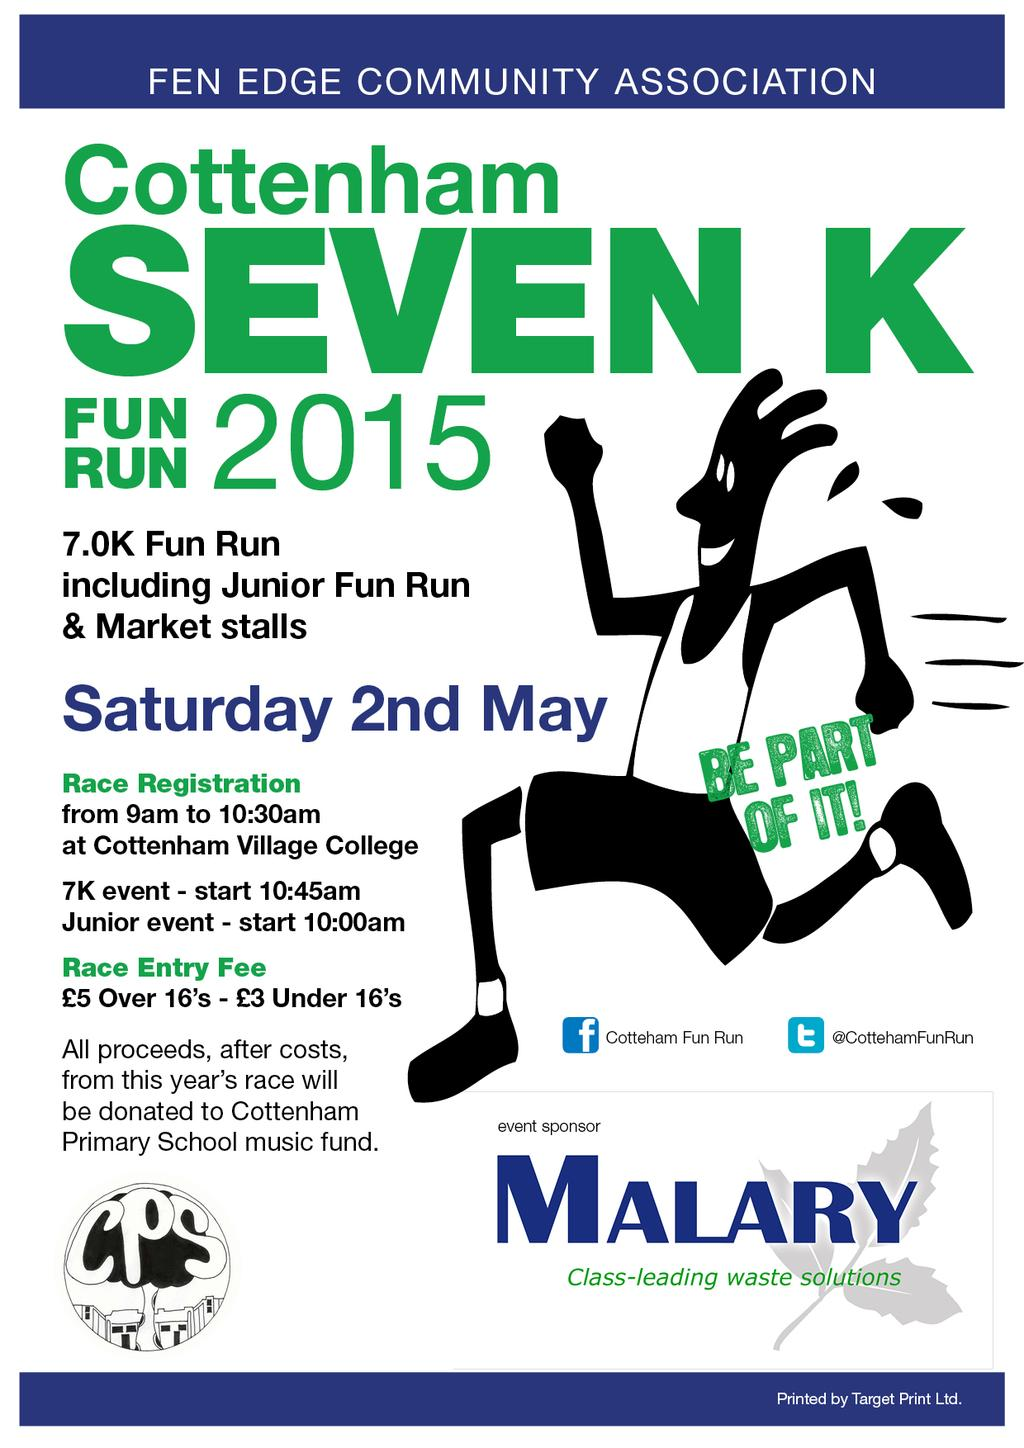 Cottenham Fun Run 2015